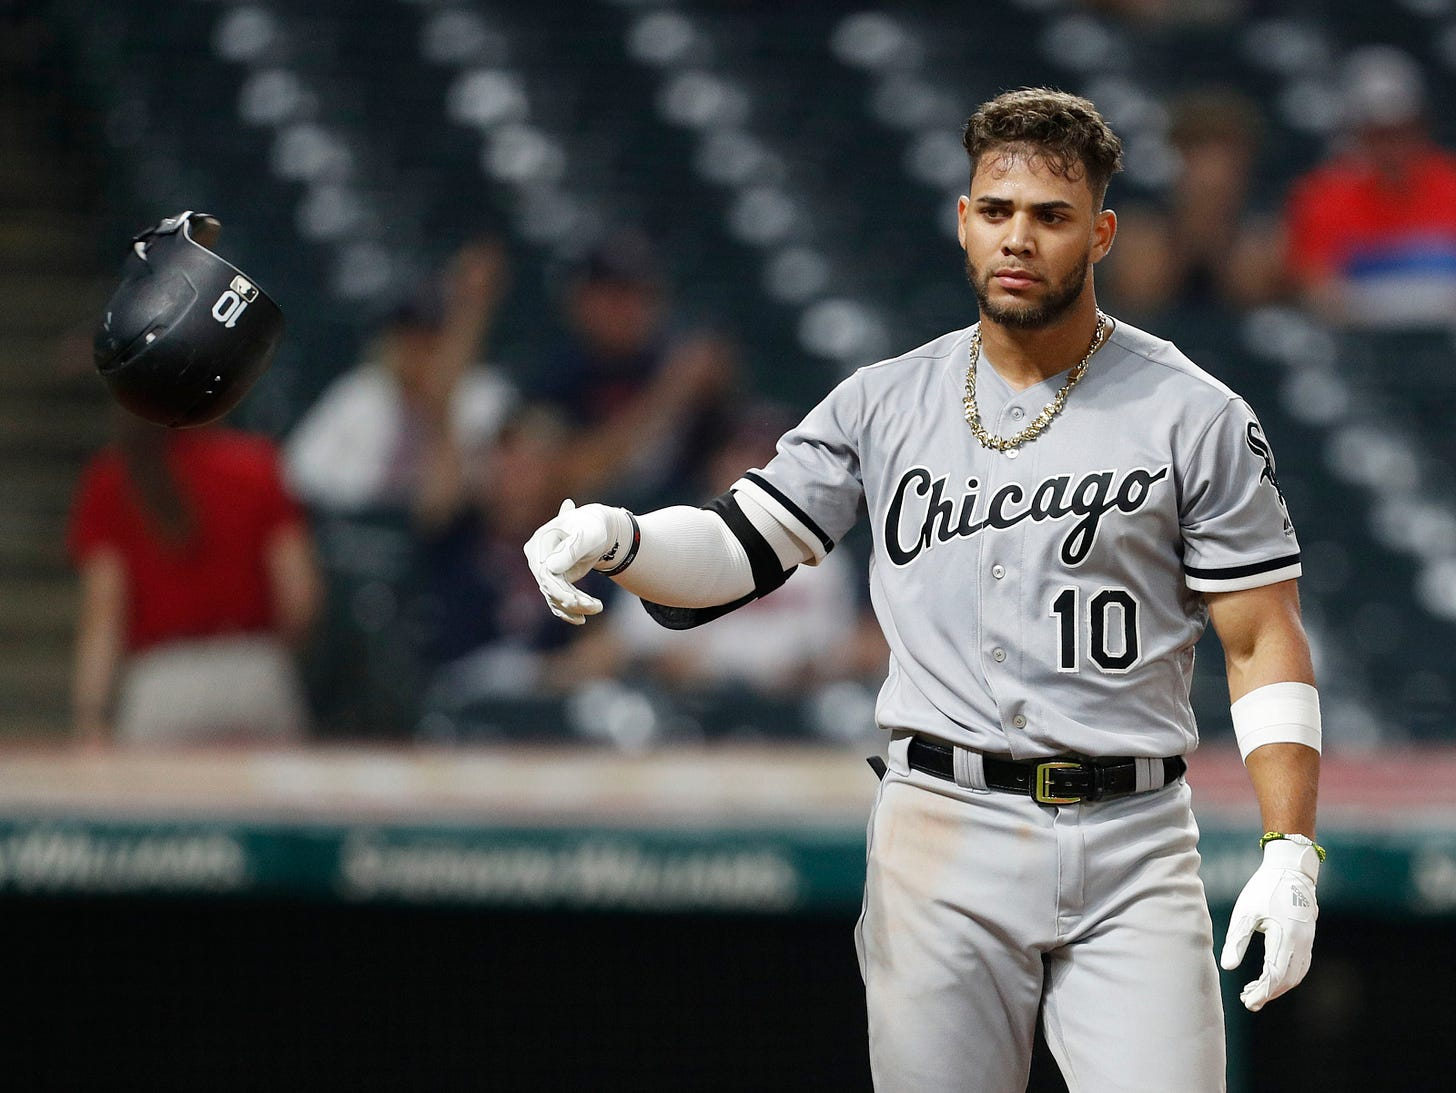 Chicago White Sox: A move to third is just what Yoan Moncada needs